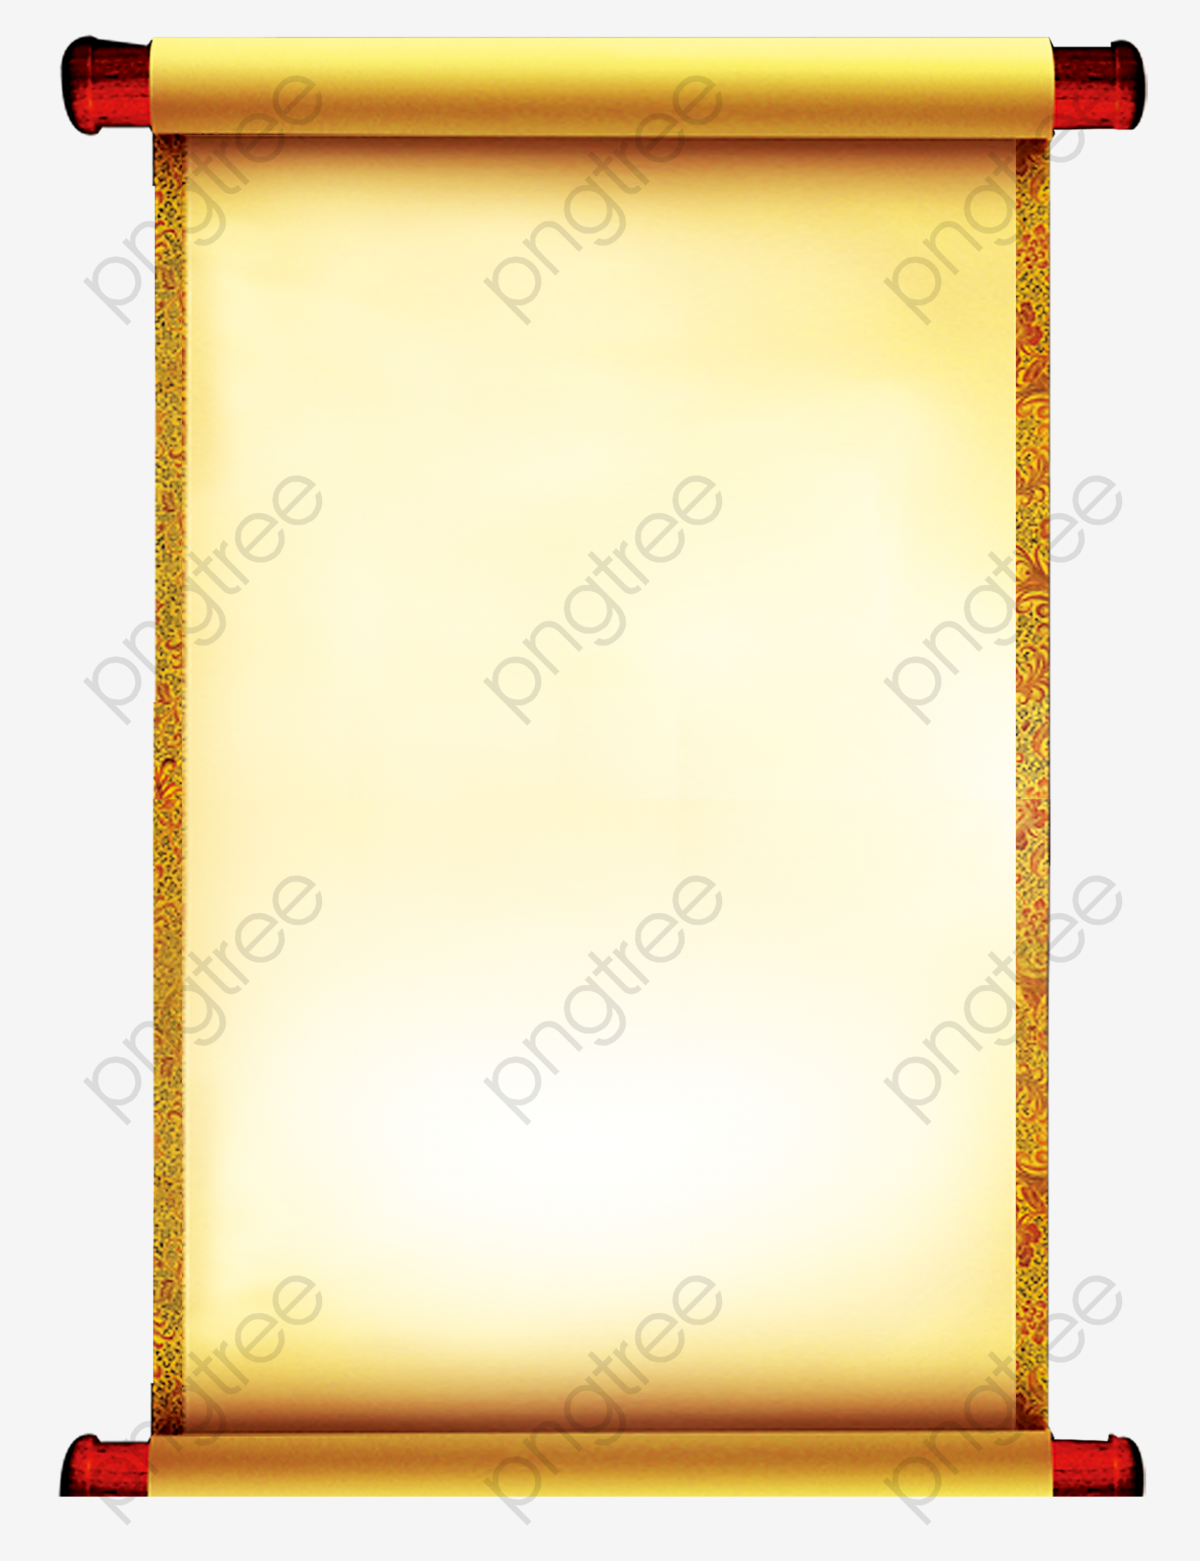 Chinese Scrolls, Chinese Clipart, Decoration, Background PNG.